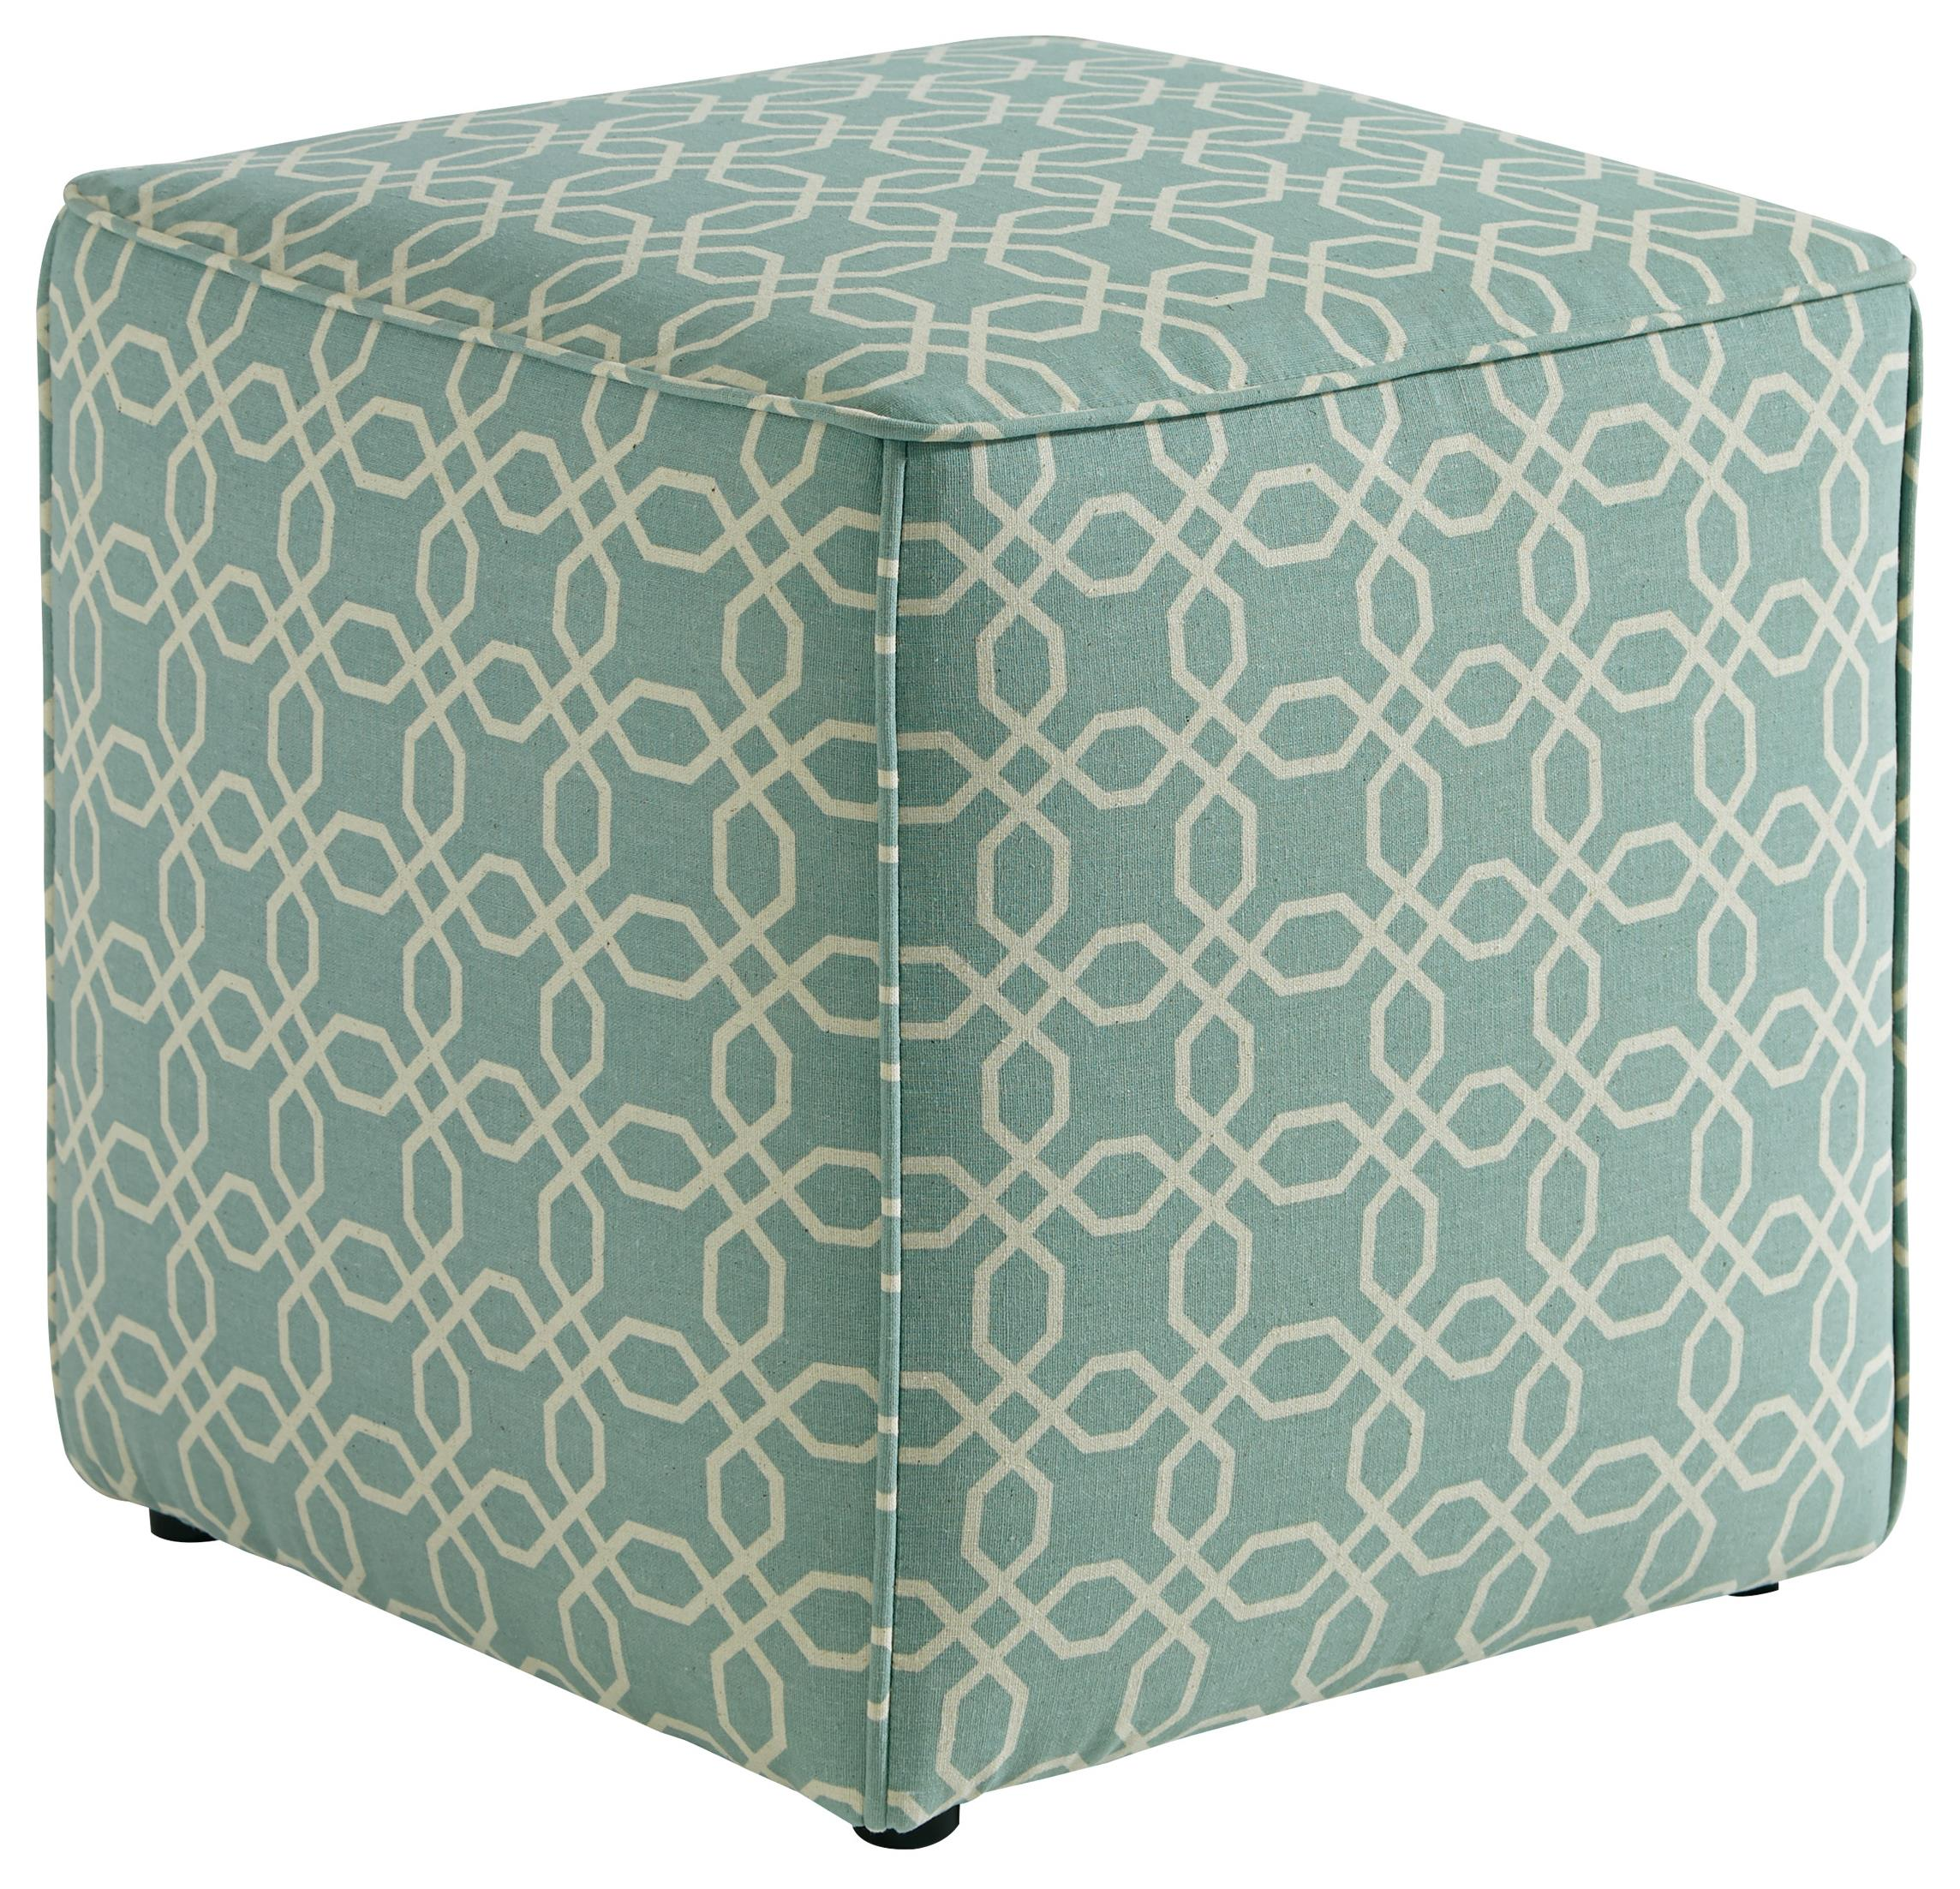 Signature Design by Ashley Kamibol Accent Ottoman - Item Number: 5490213